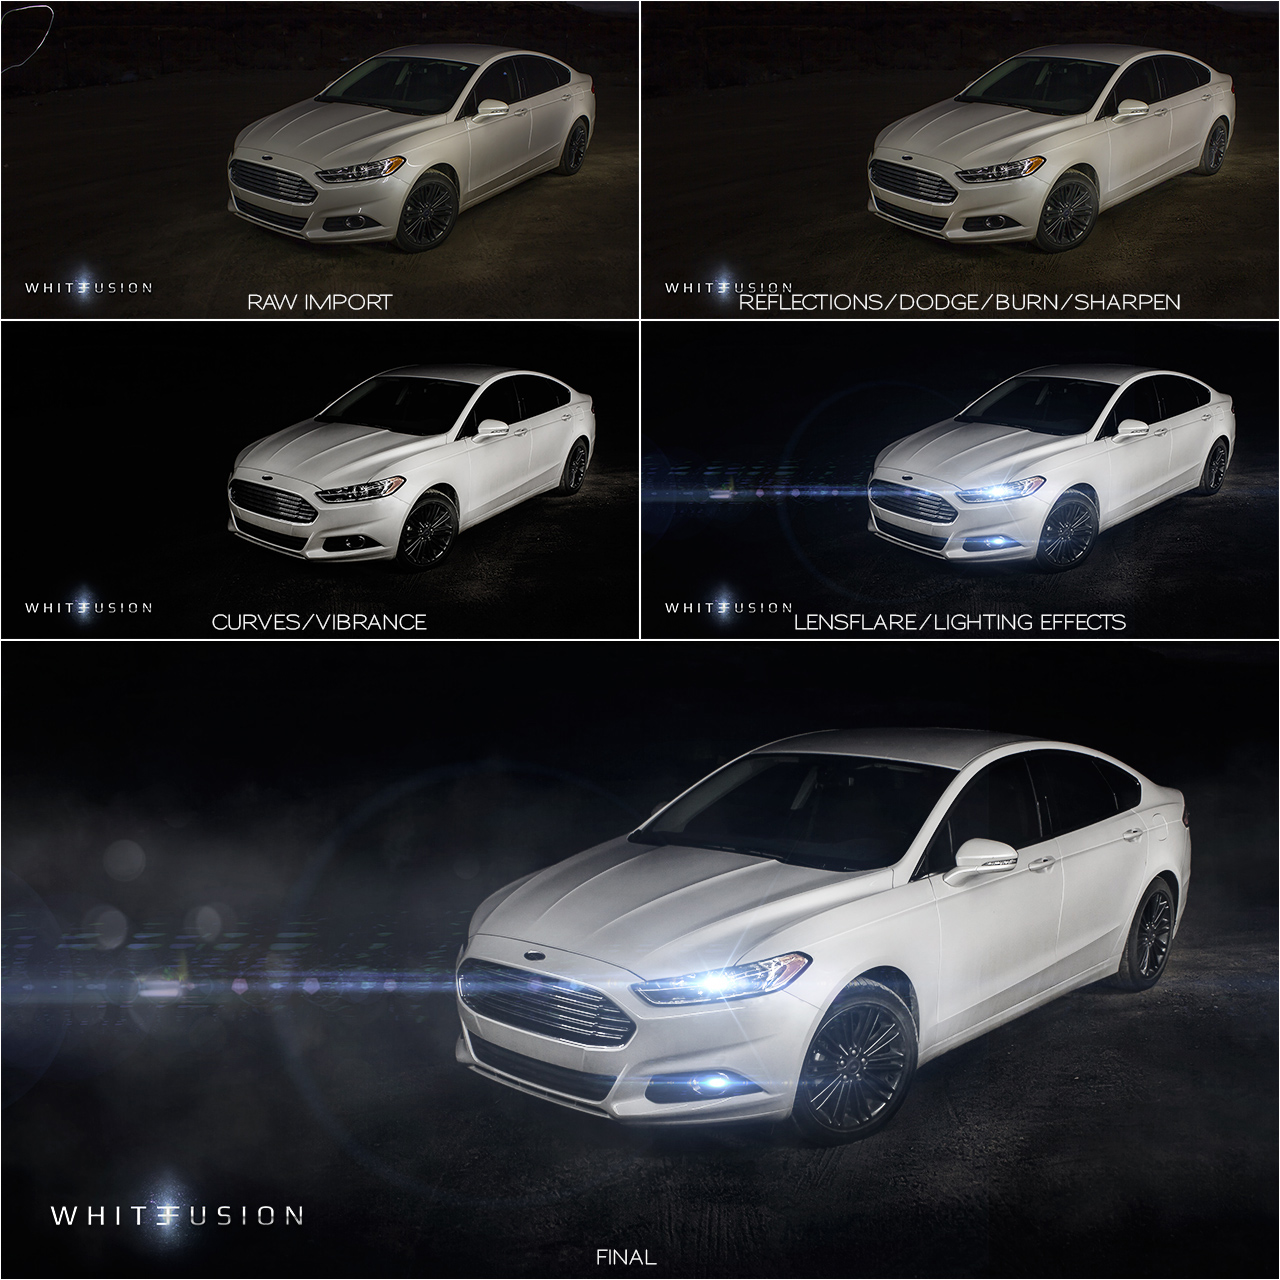 Automotive Image Editing Post Processing Before And After Transportation In Photography On The Net Forums